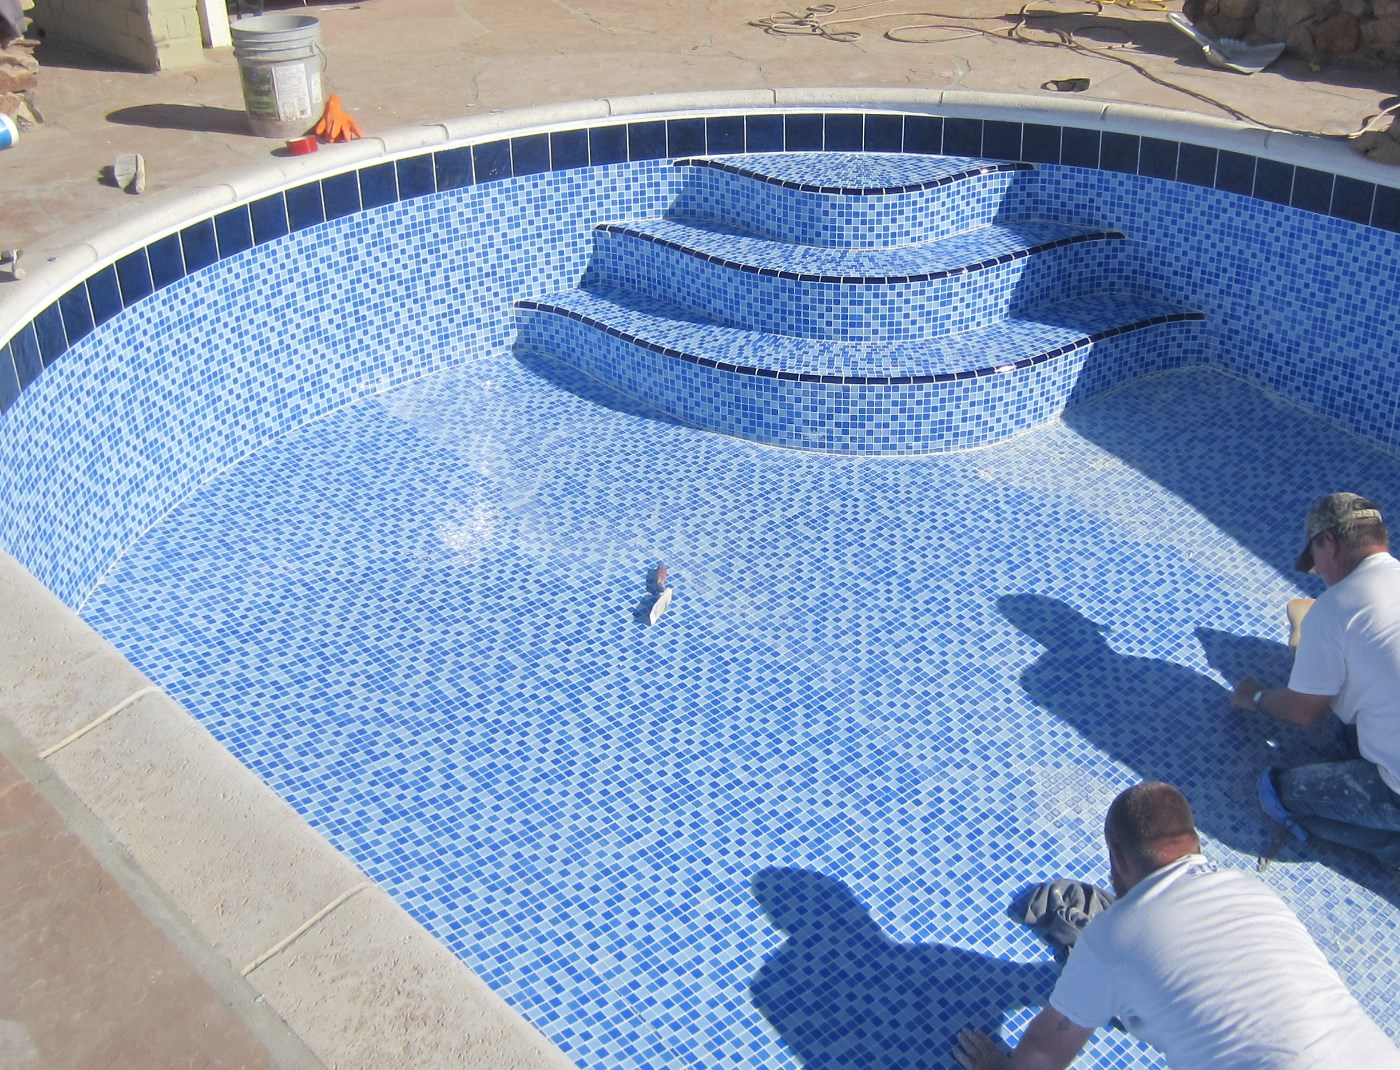 Restructuring a swimming pool